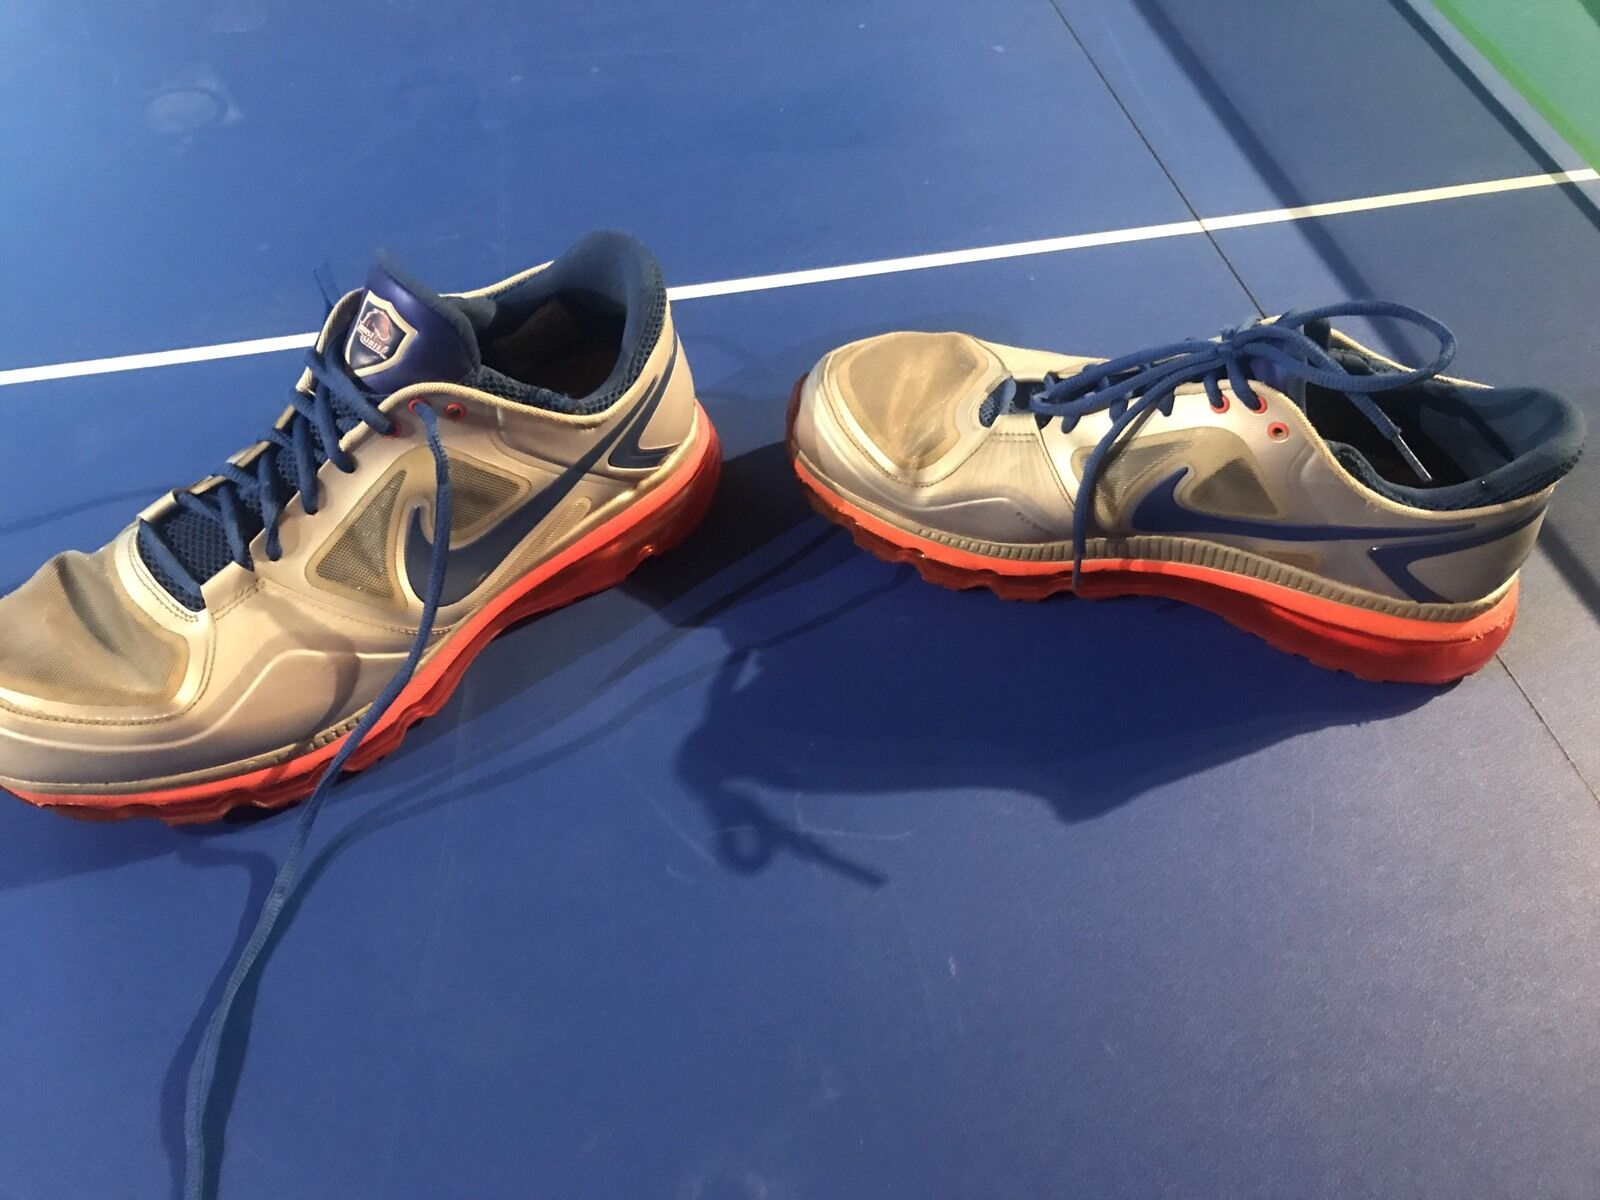 Nike Trainer 1.3 Boise State Shoes - Used Size 14 - Rare Players Only Promo